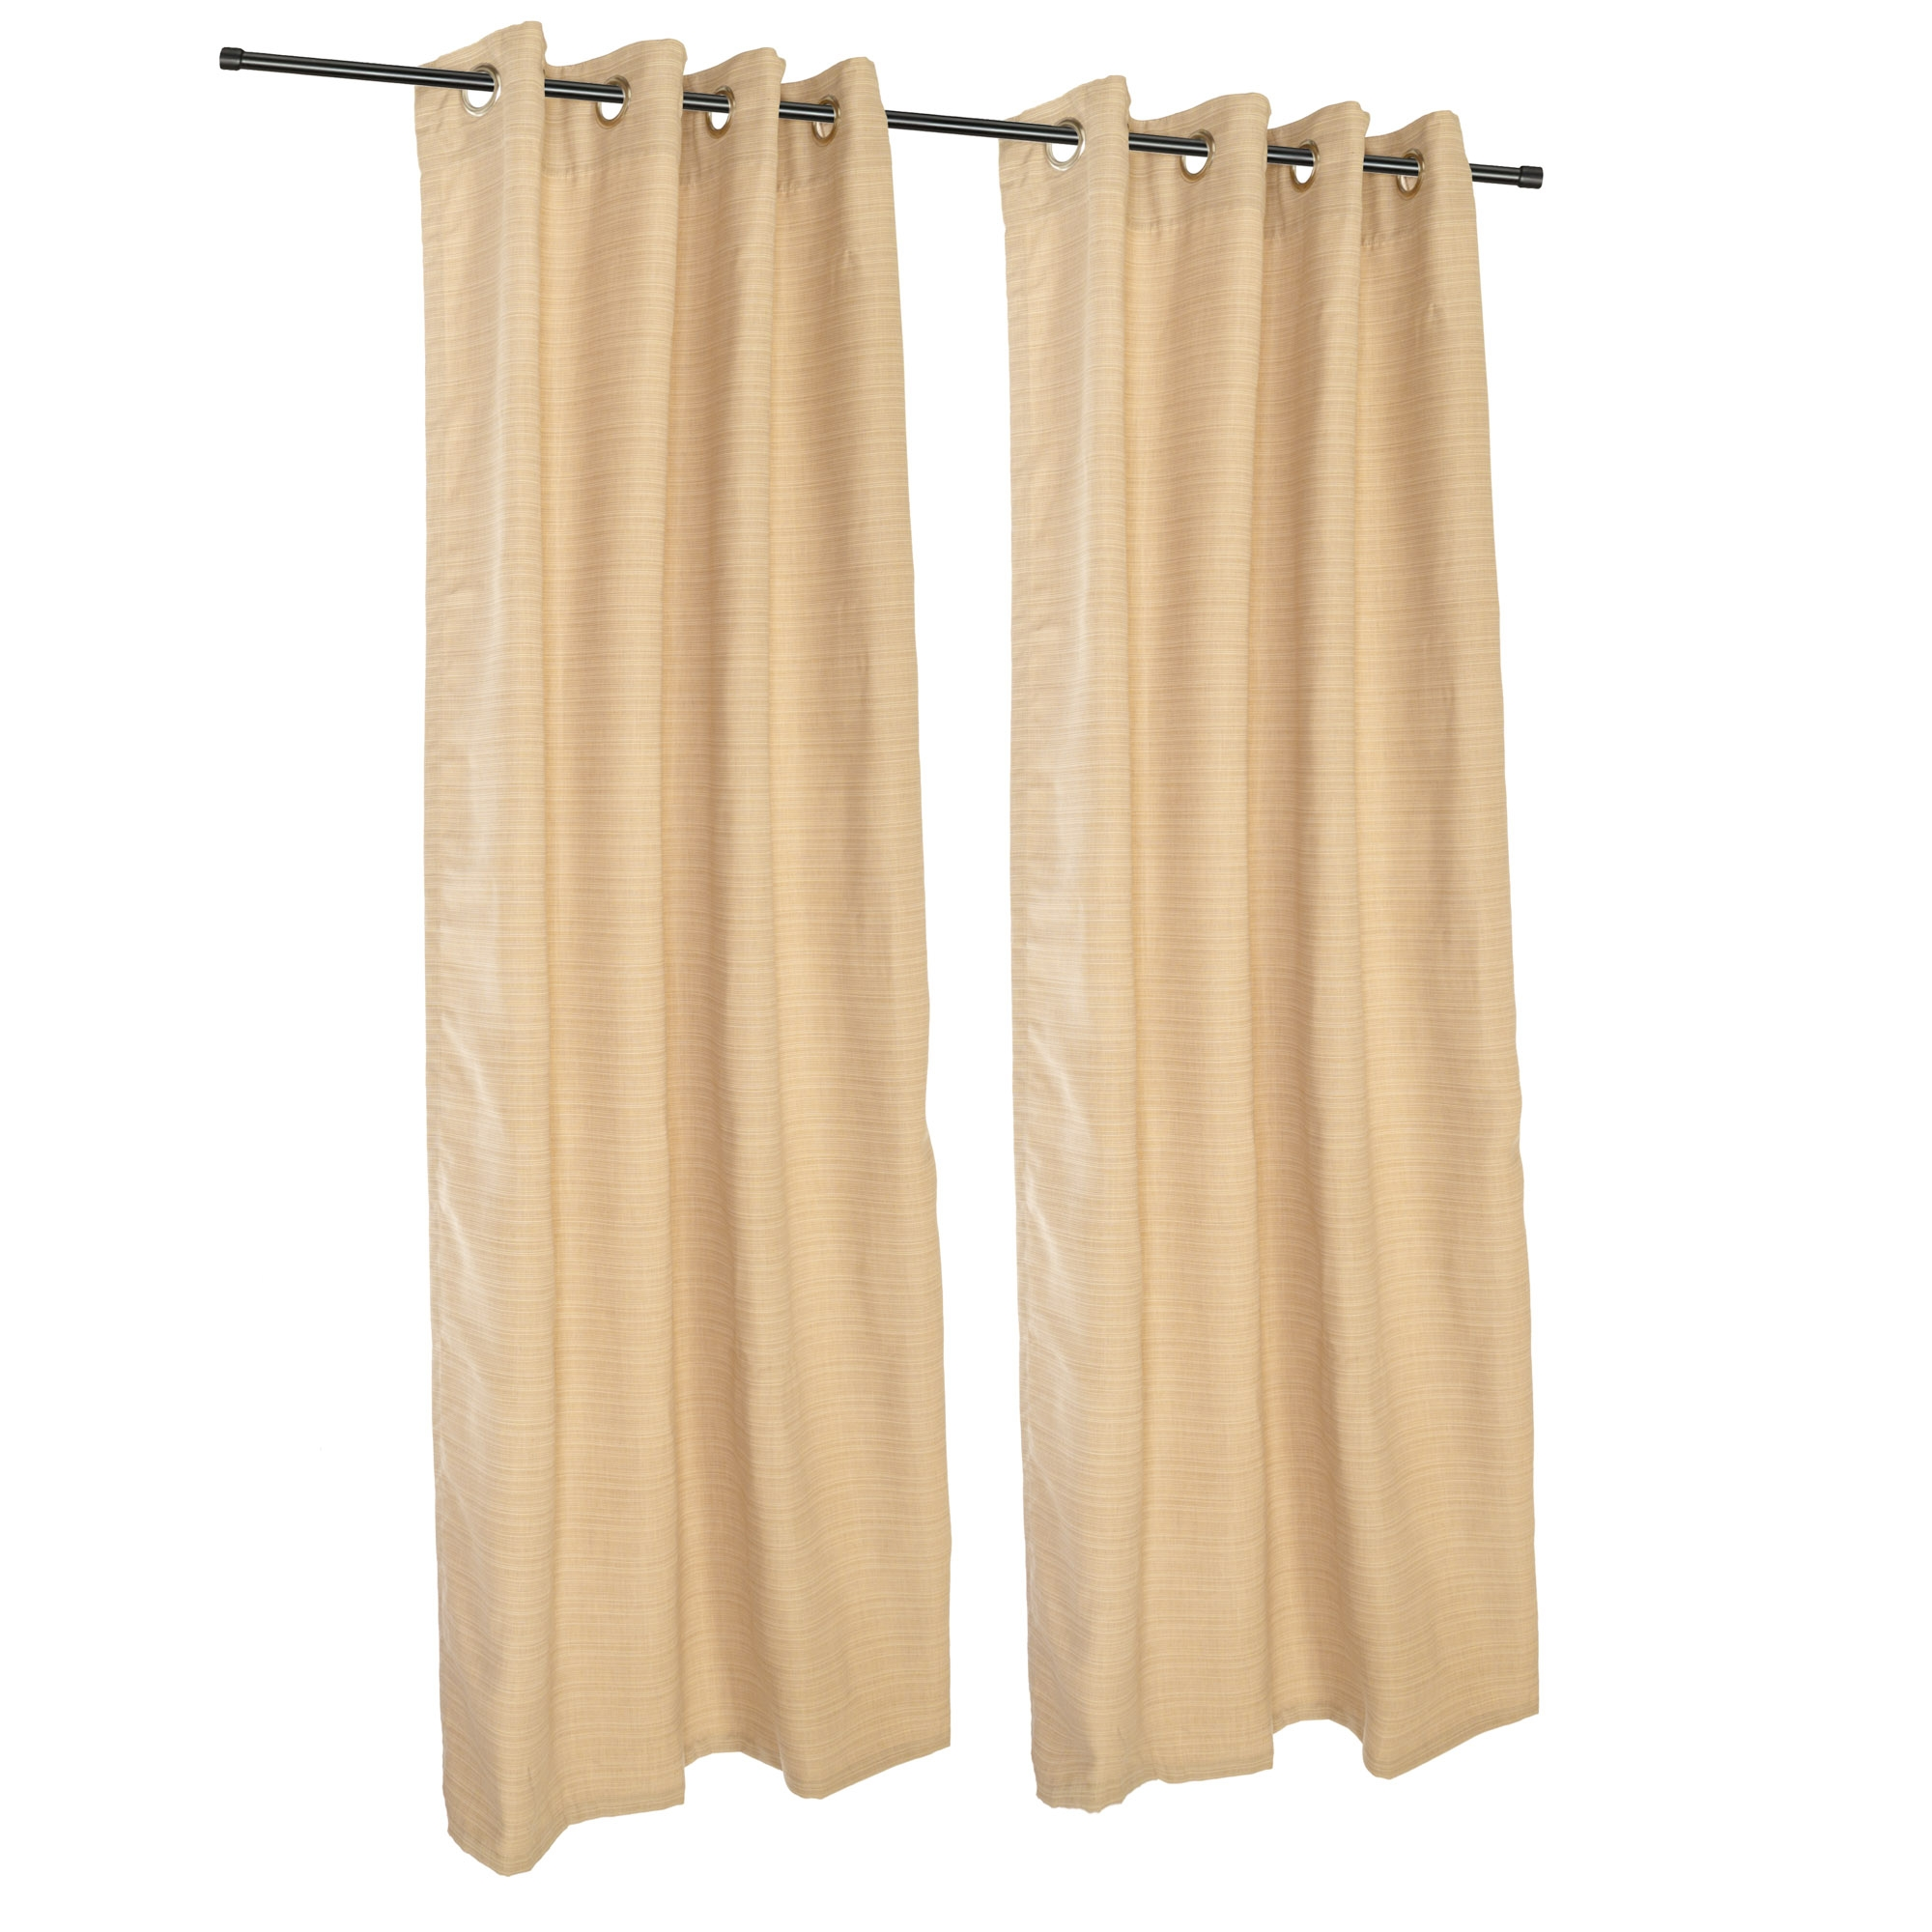 Sunbrella Outdoor Shower Curtains | Pottery Barn Outdoor Pillows | Sunbrella Curtains